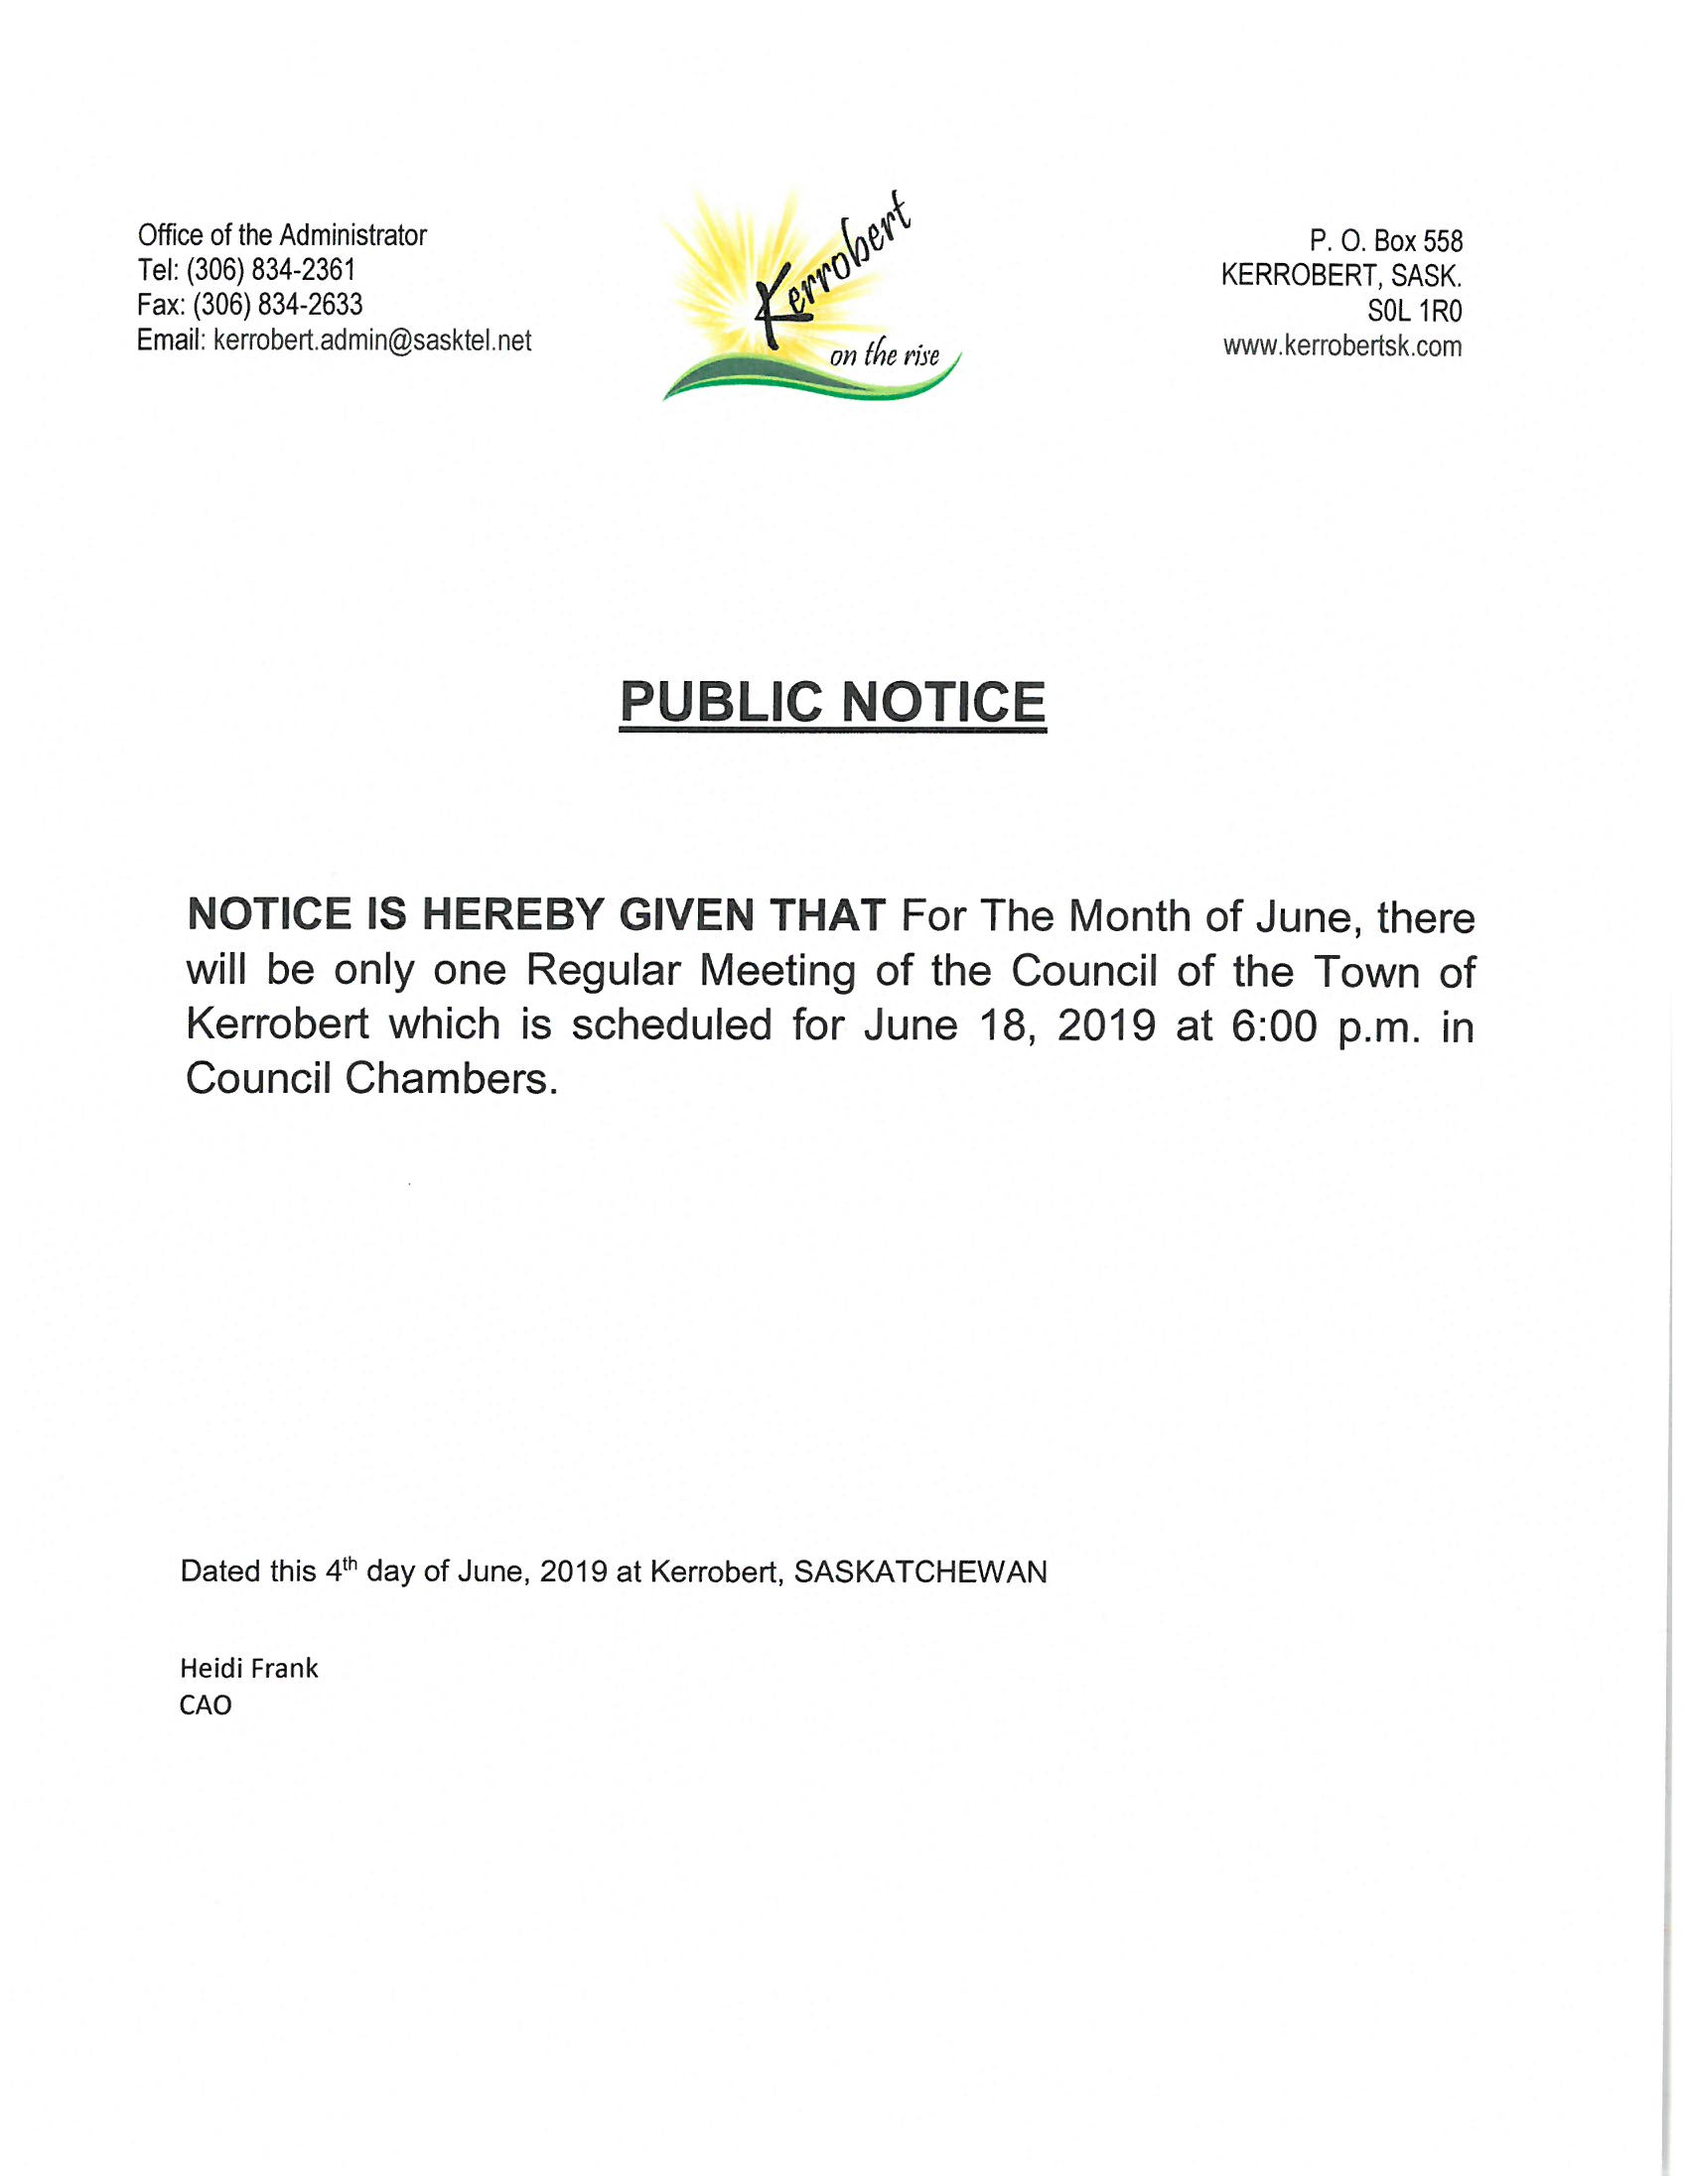 June 2019 Council Meeting